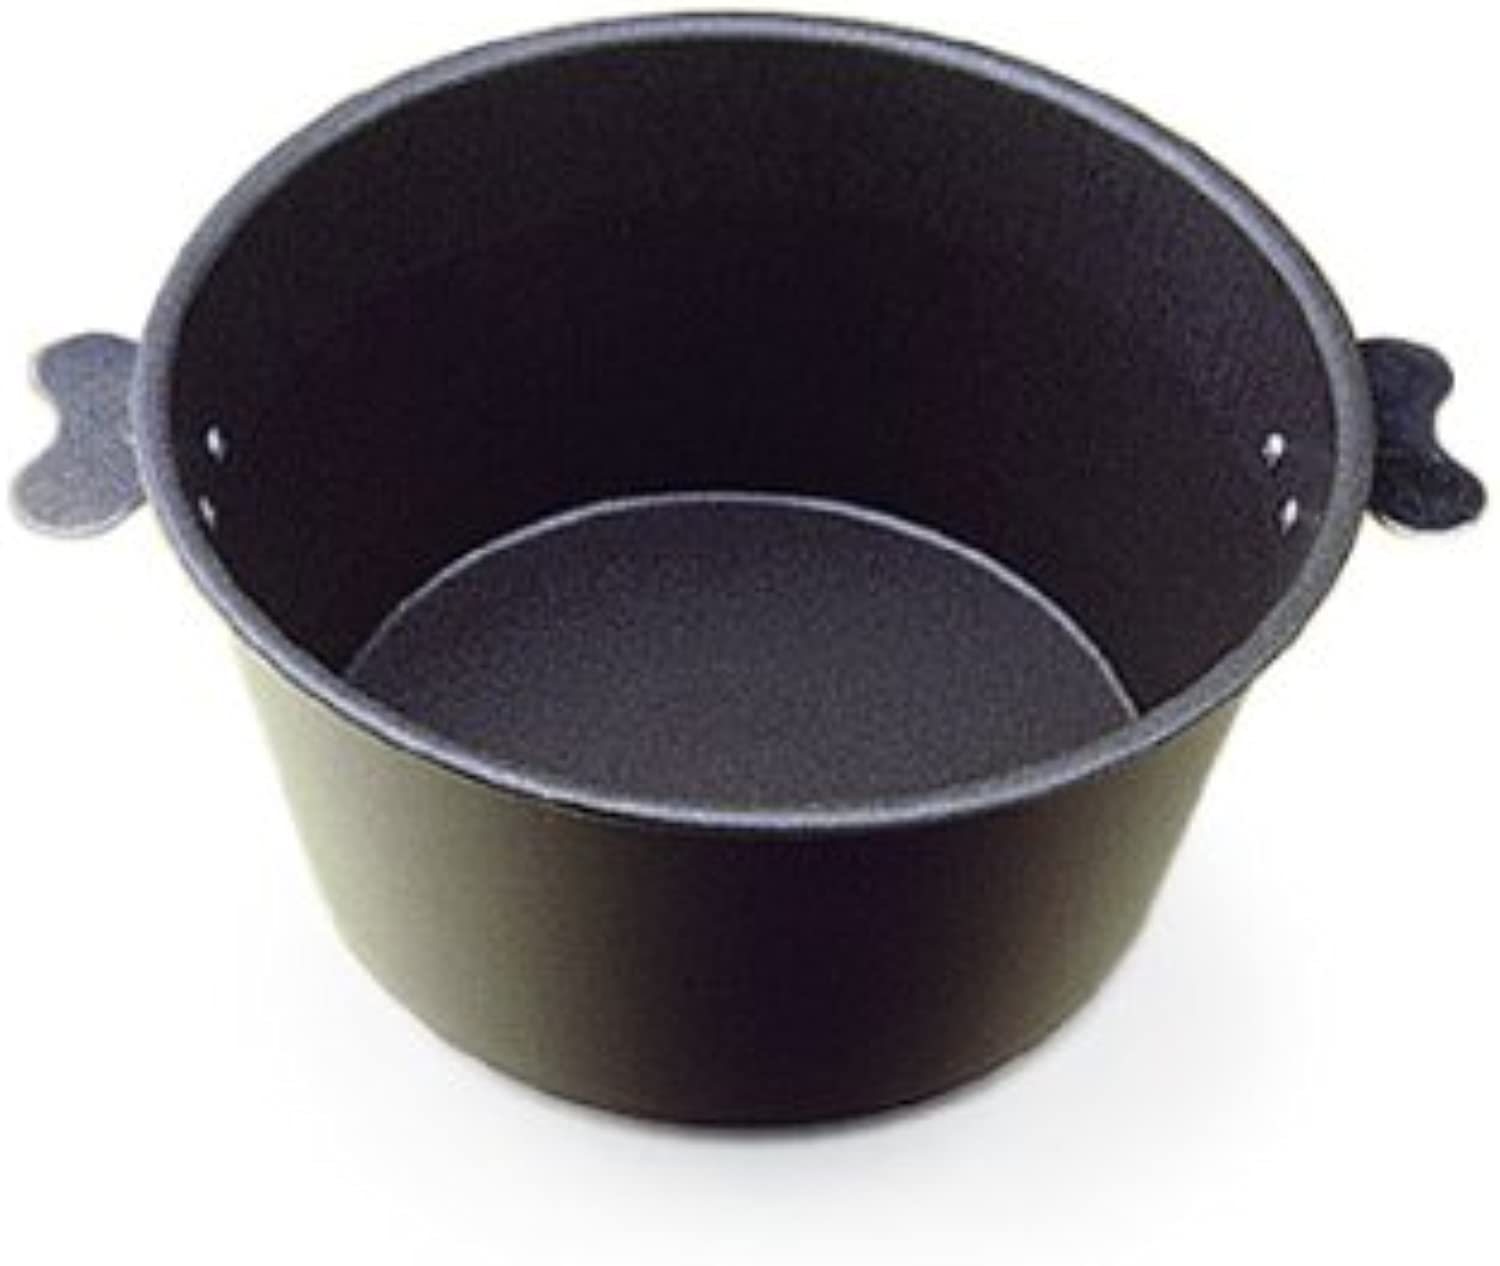 SCI Scandicrafts Charlotte Mold 7-inch 8-Cup, Nonstick